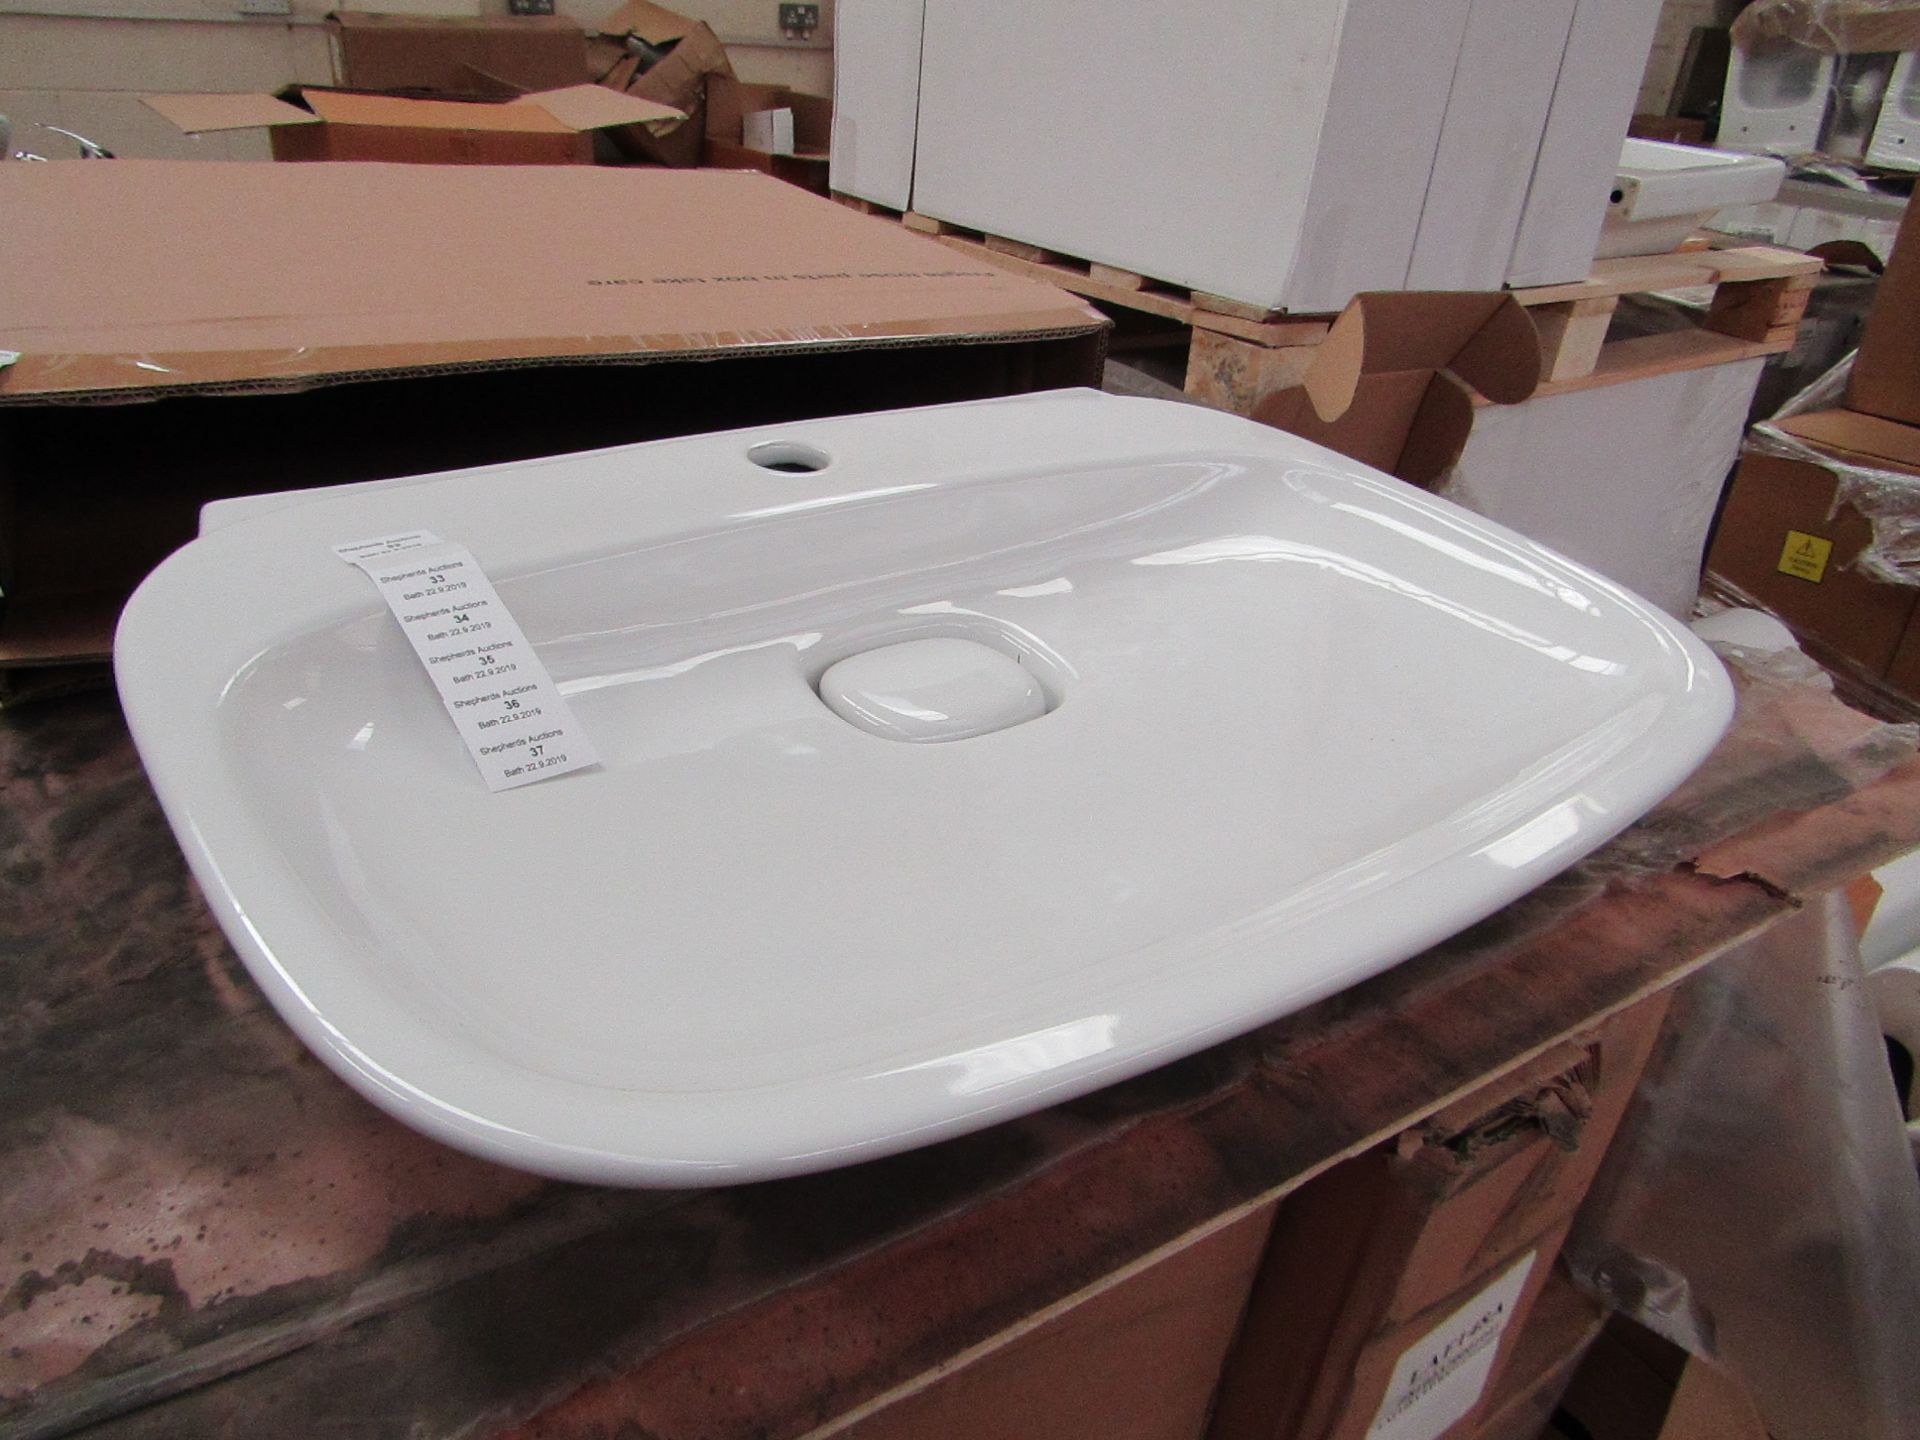 Lotto 36 - Laufen Made 60cm Sink with Ceramic plug hole cover, new and boxed